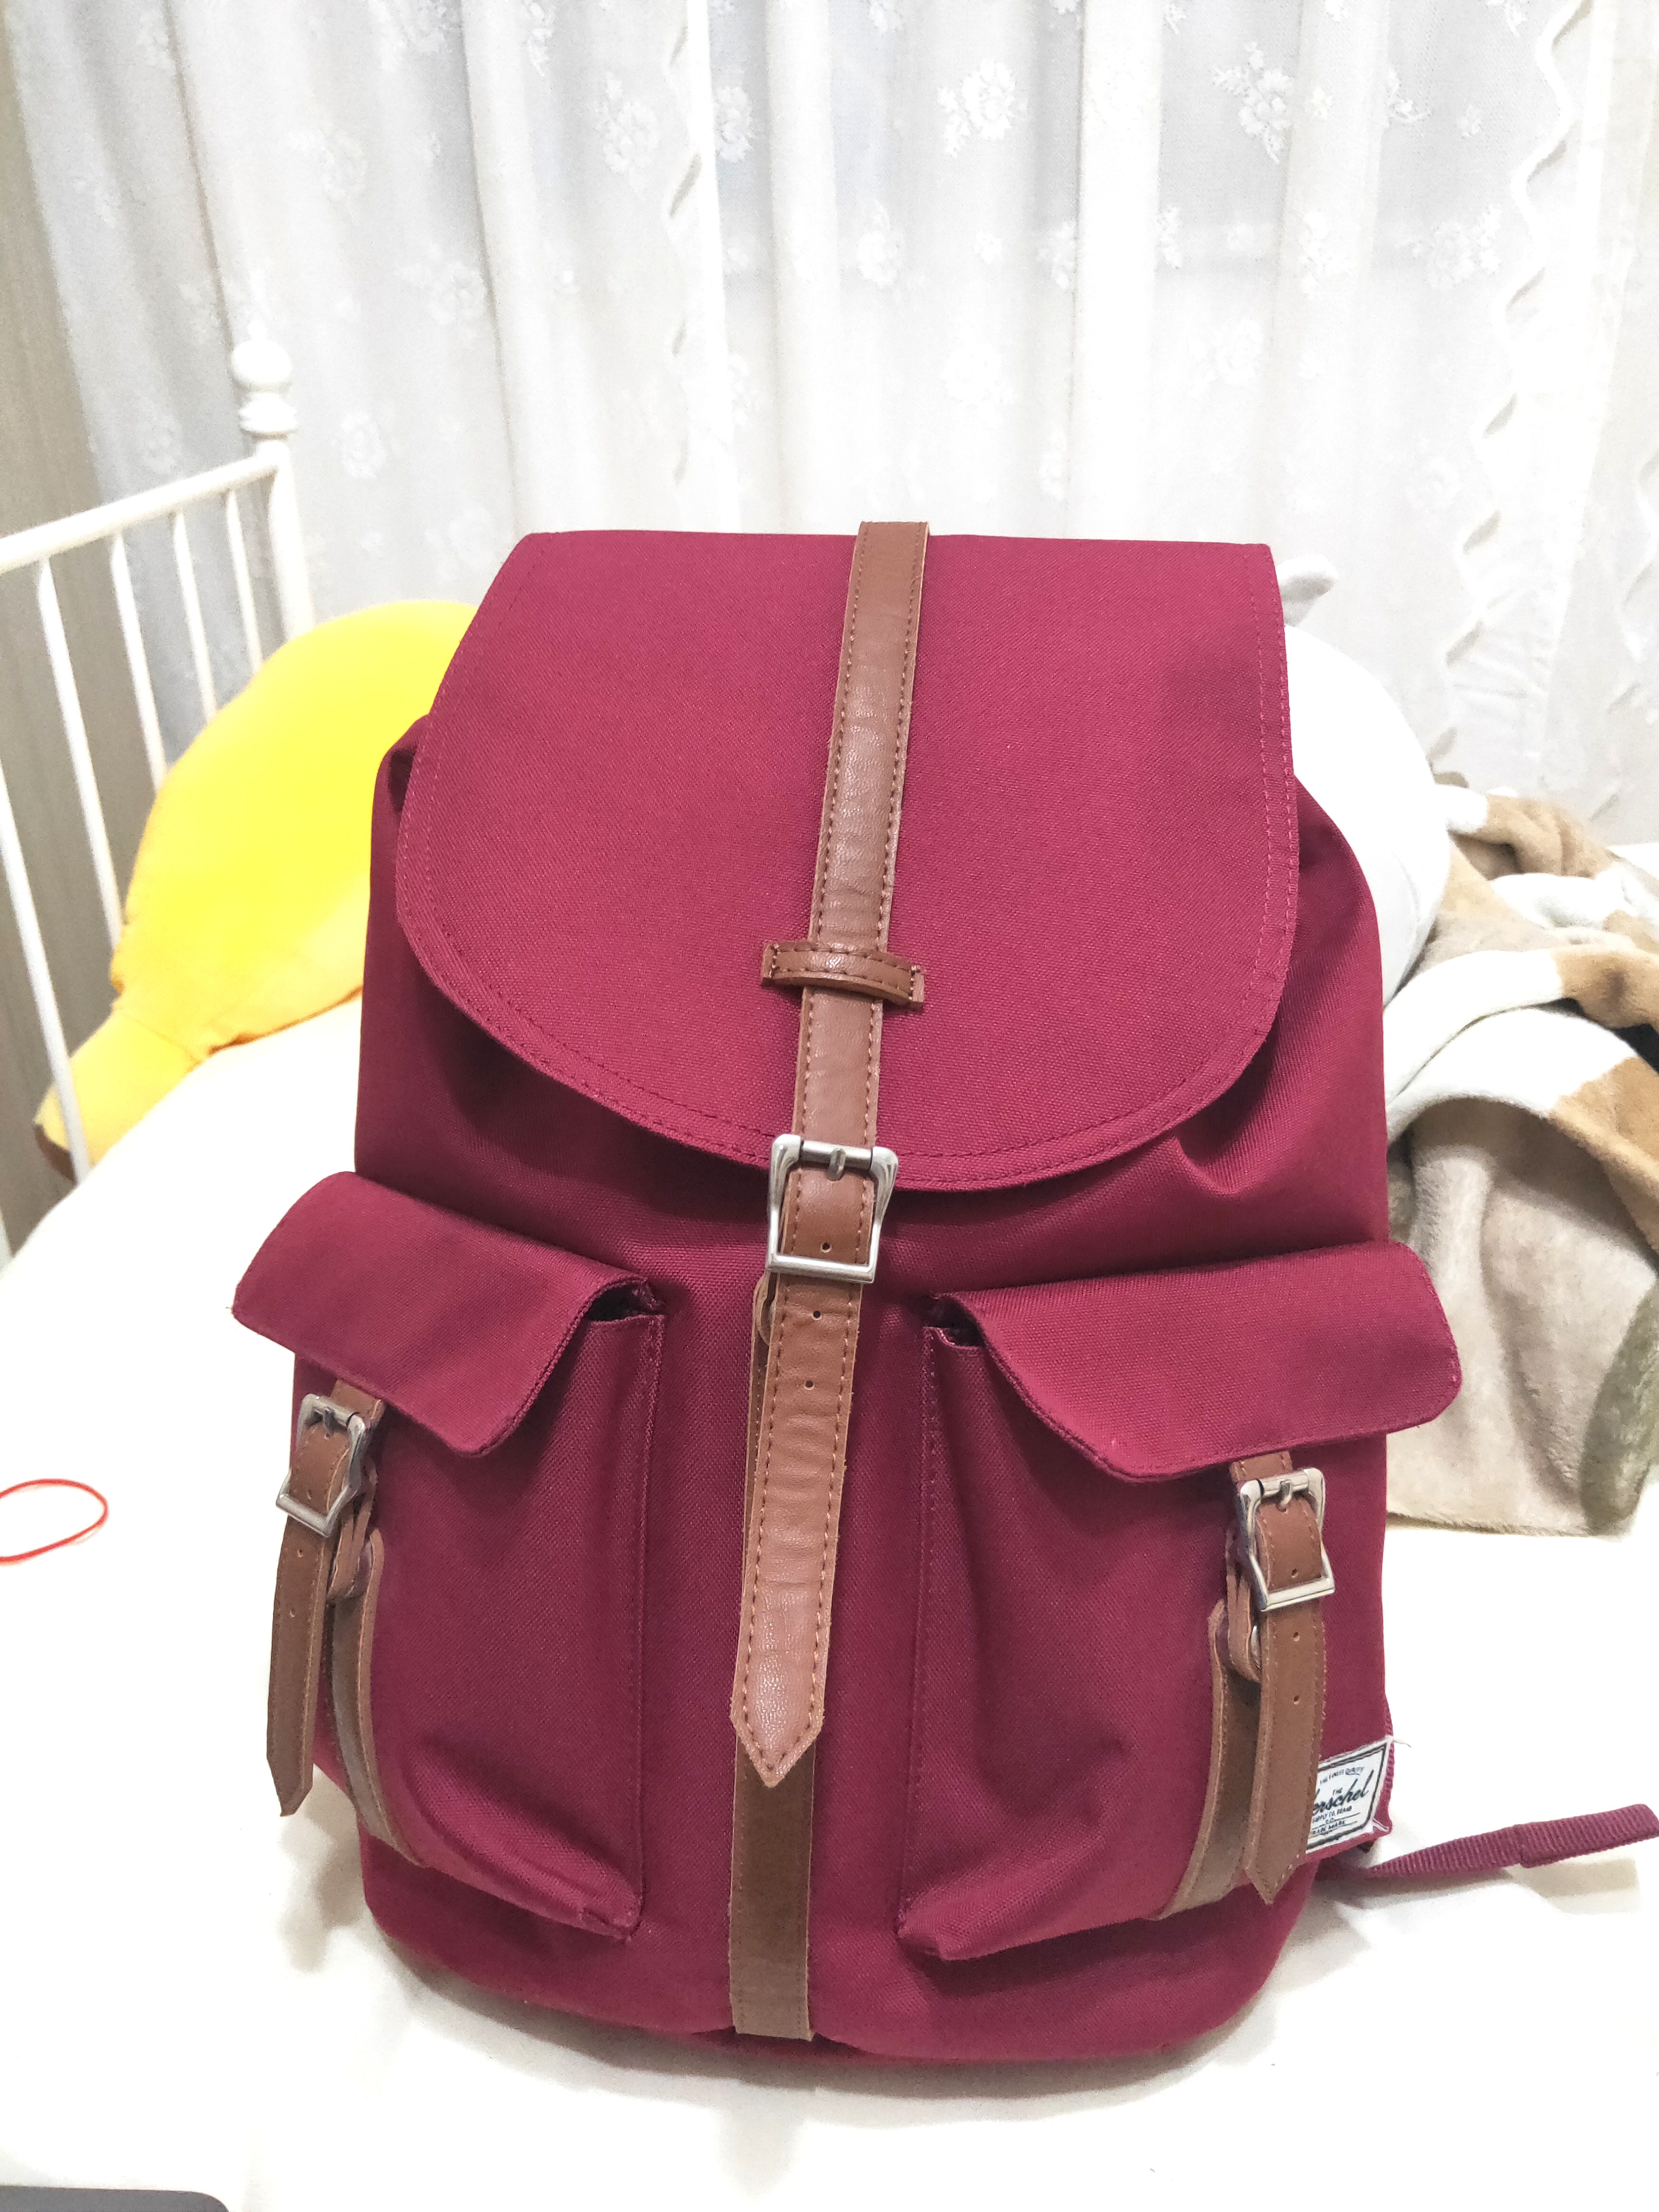 6ece2b2ef72 Authentic Herschel dawson backpack